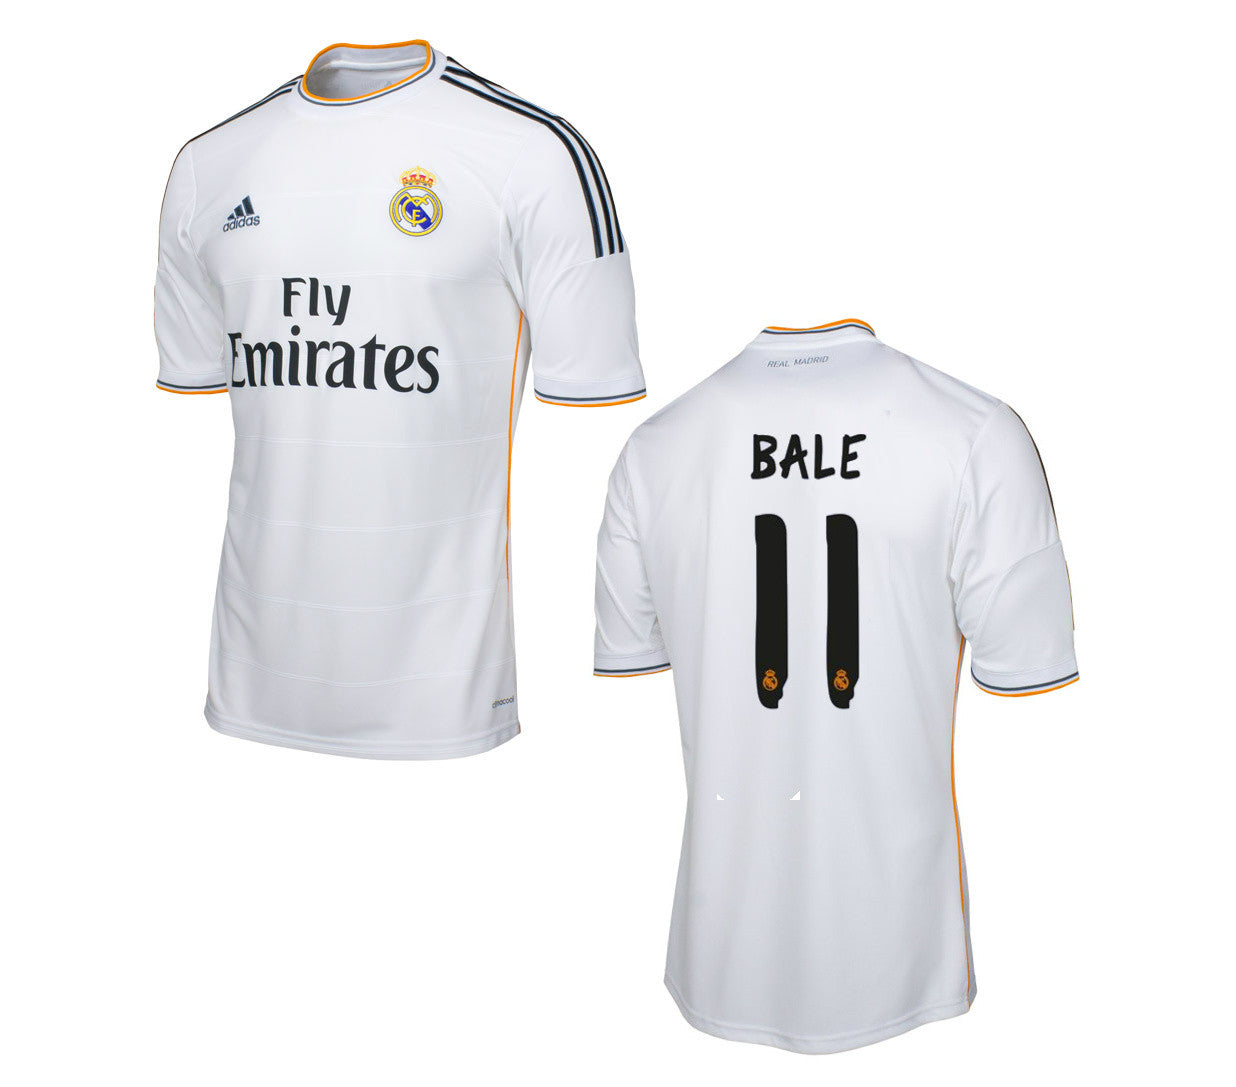 Bale Jersey Real Madrid Home 2013 2014 , Ronaldo Jerseys - Adidas, G2G Sport Chicago